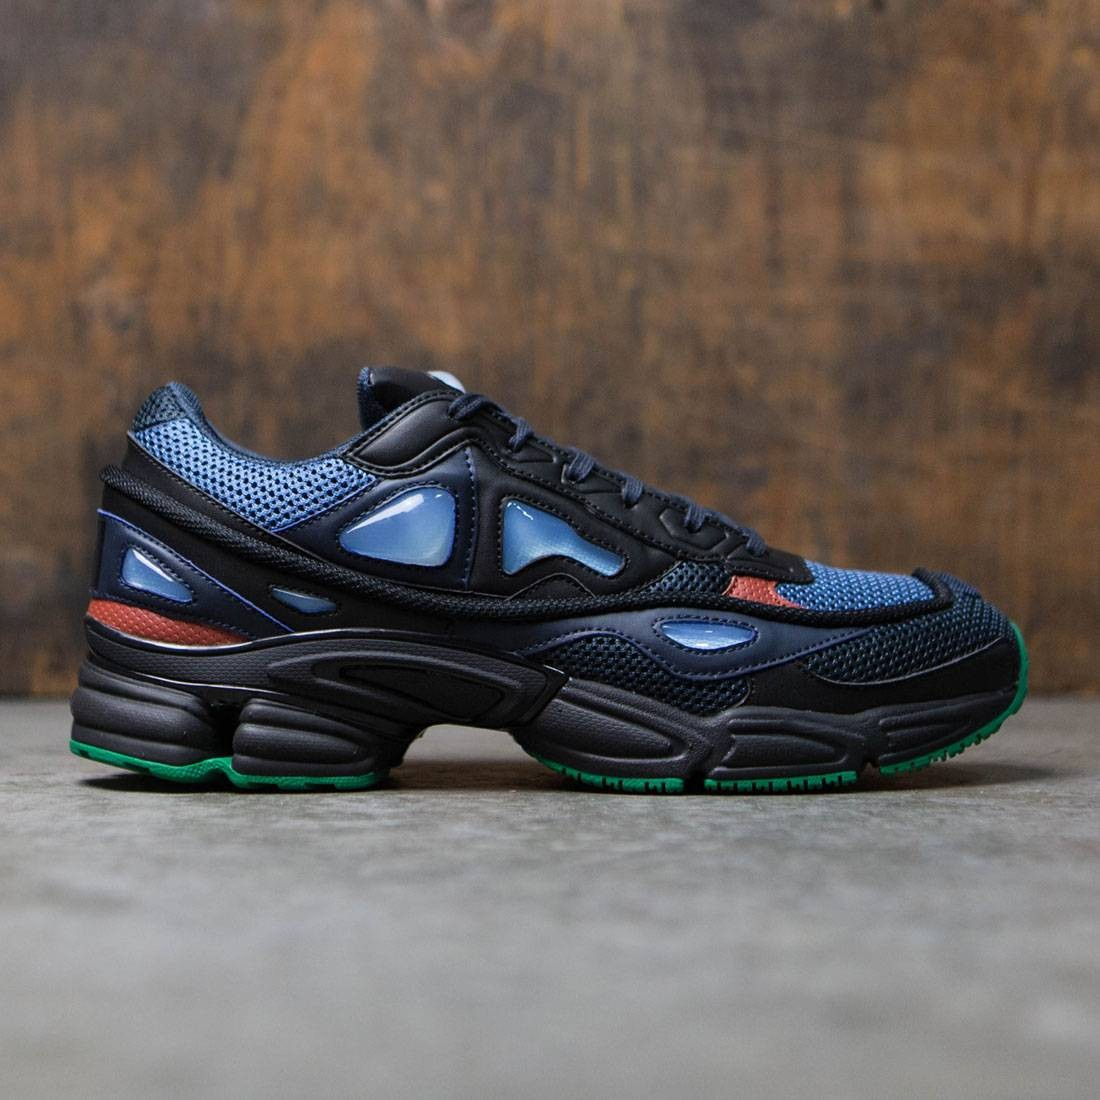 Adidas x Raf Simons Men Ozweego 2 (navy / night marine / core black / light blue)